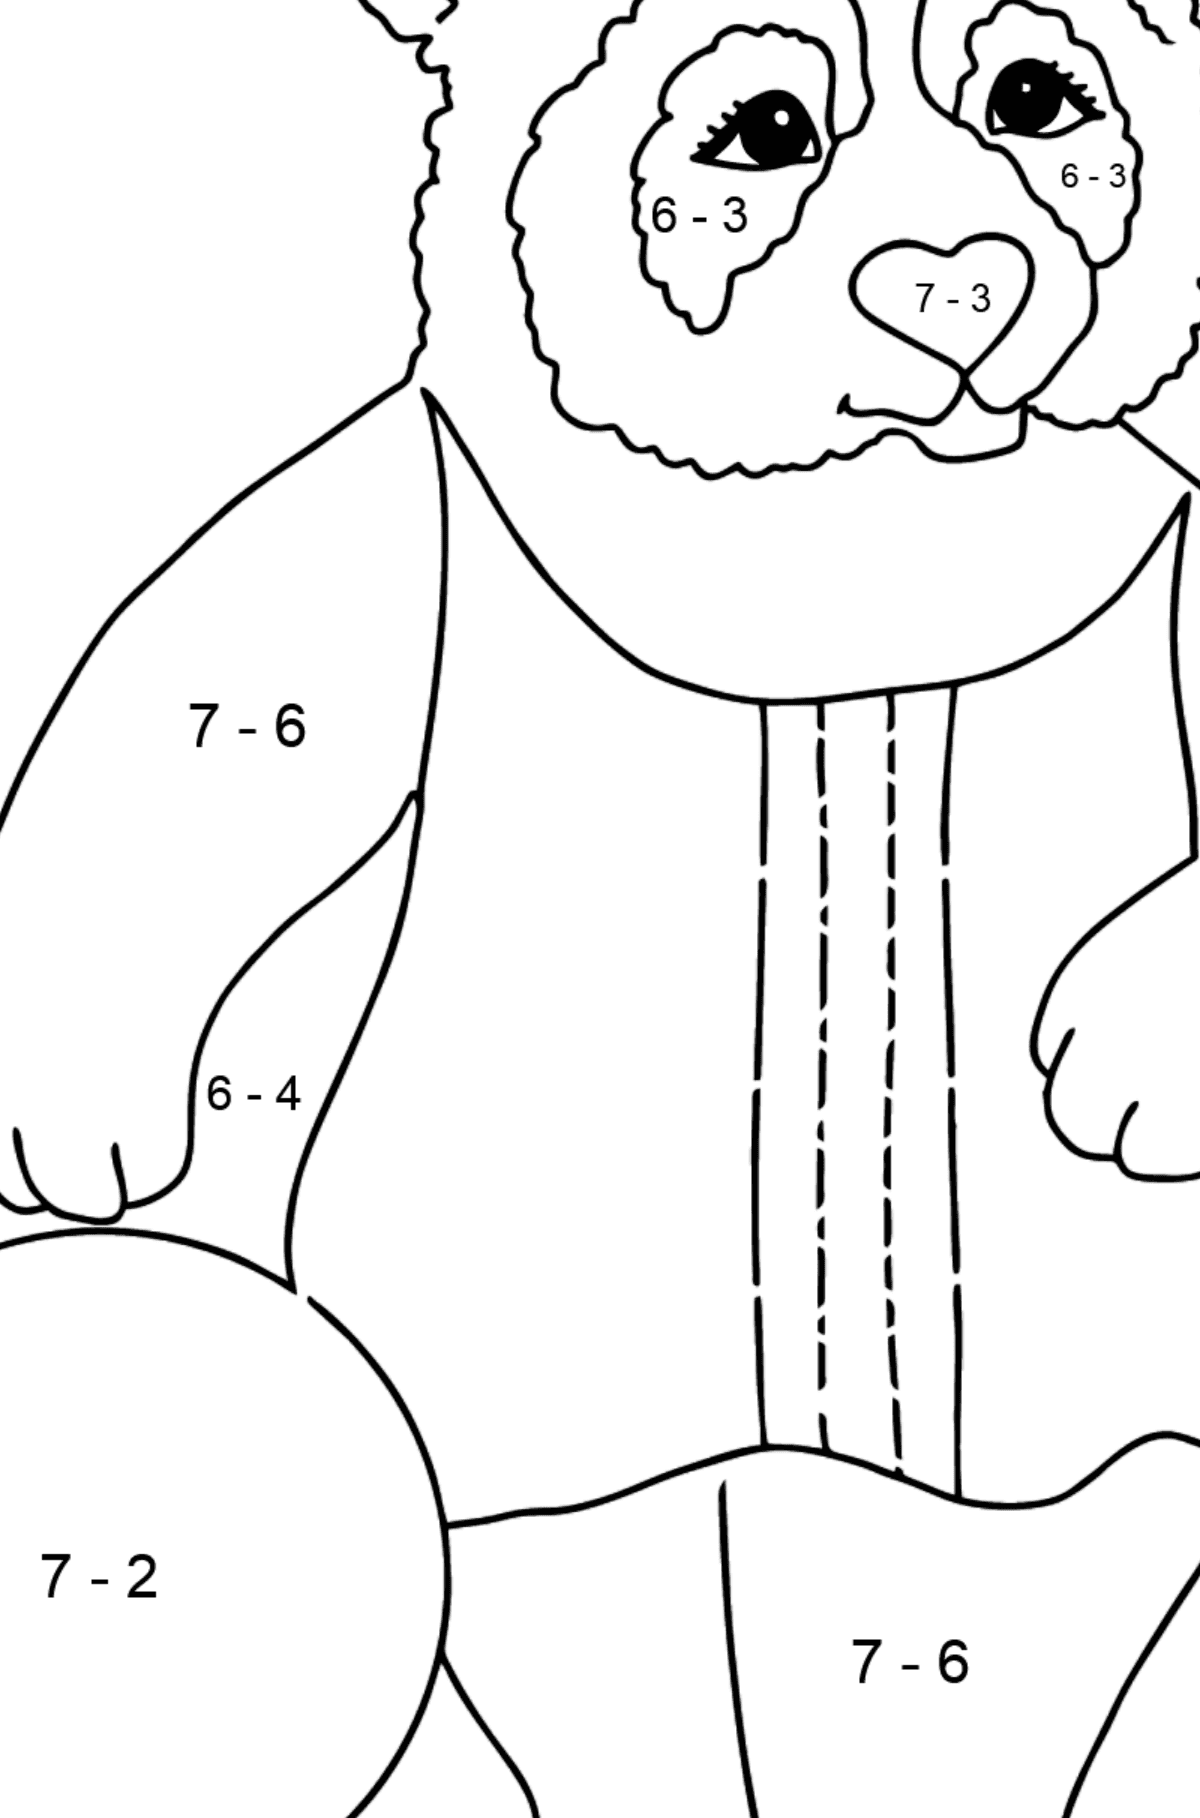 Coloring Picture - A Panda is Playing Ball - Math Coloring - Subtraction for Kids